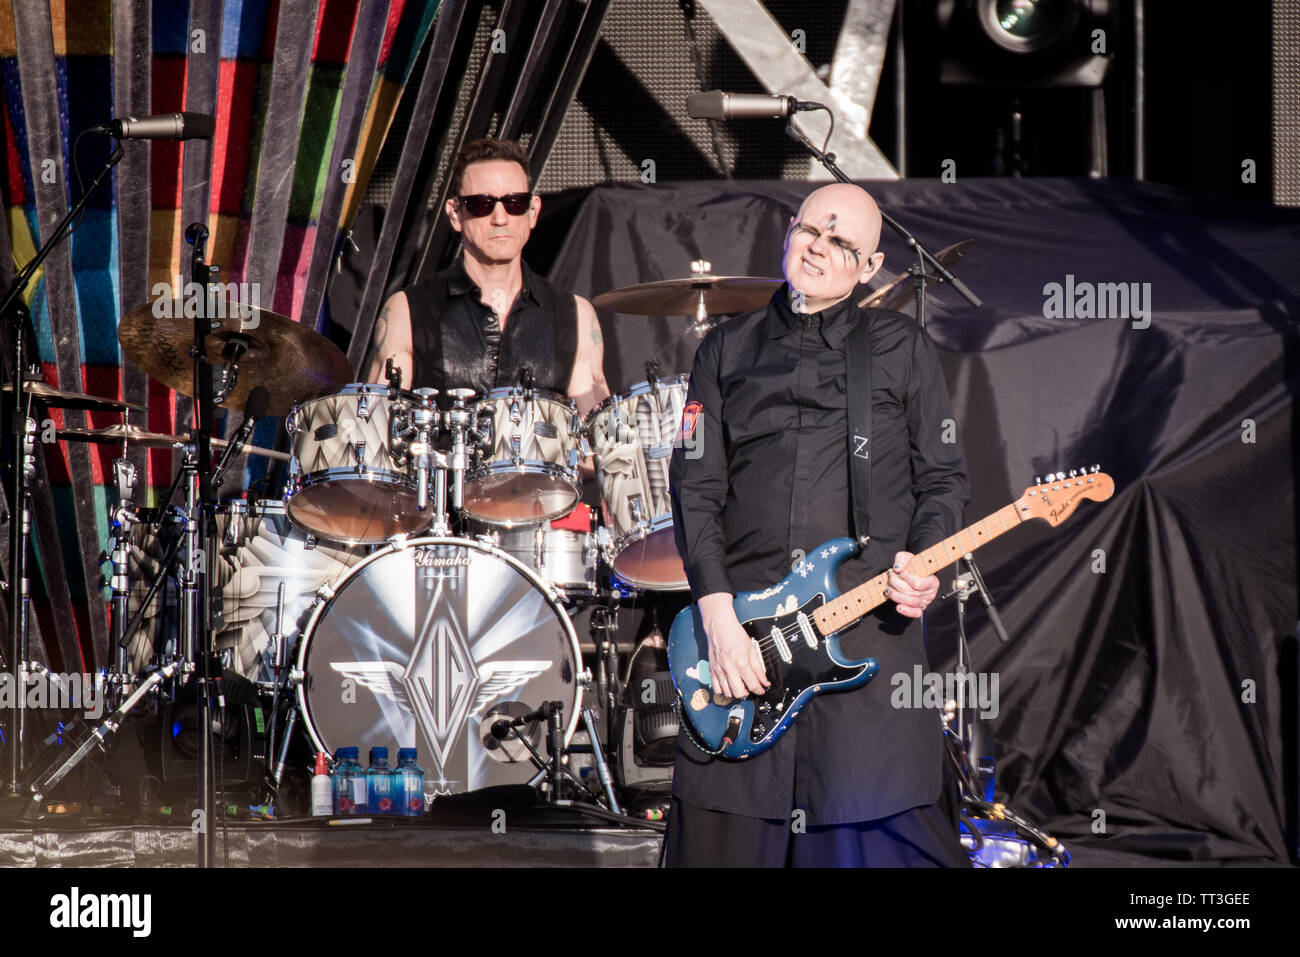 Billy Corgan and Jimmy Chamberlin of the American rock band Smashing Pumpkins, performing live on stage at the Firenze Rocks festival 2019 in Florence - Stock Image